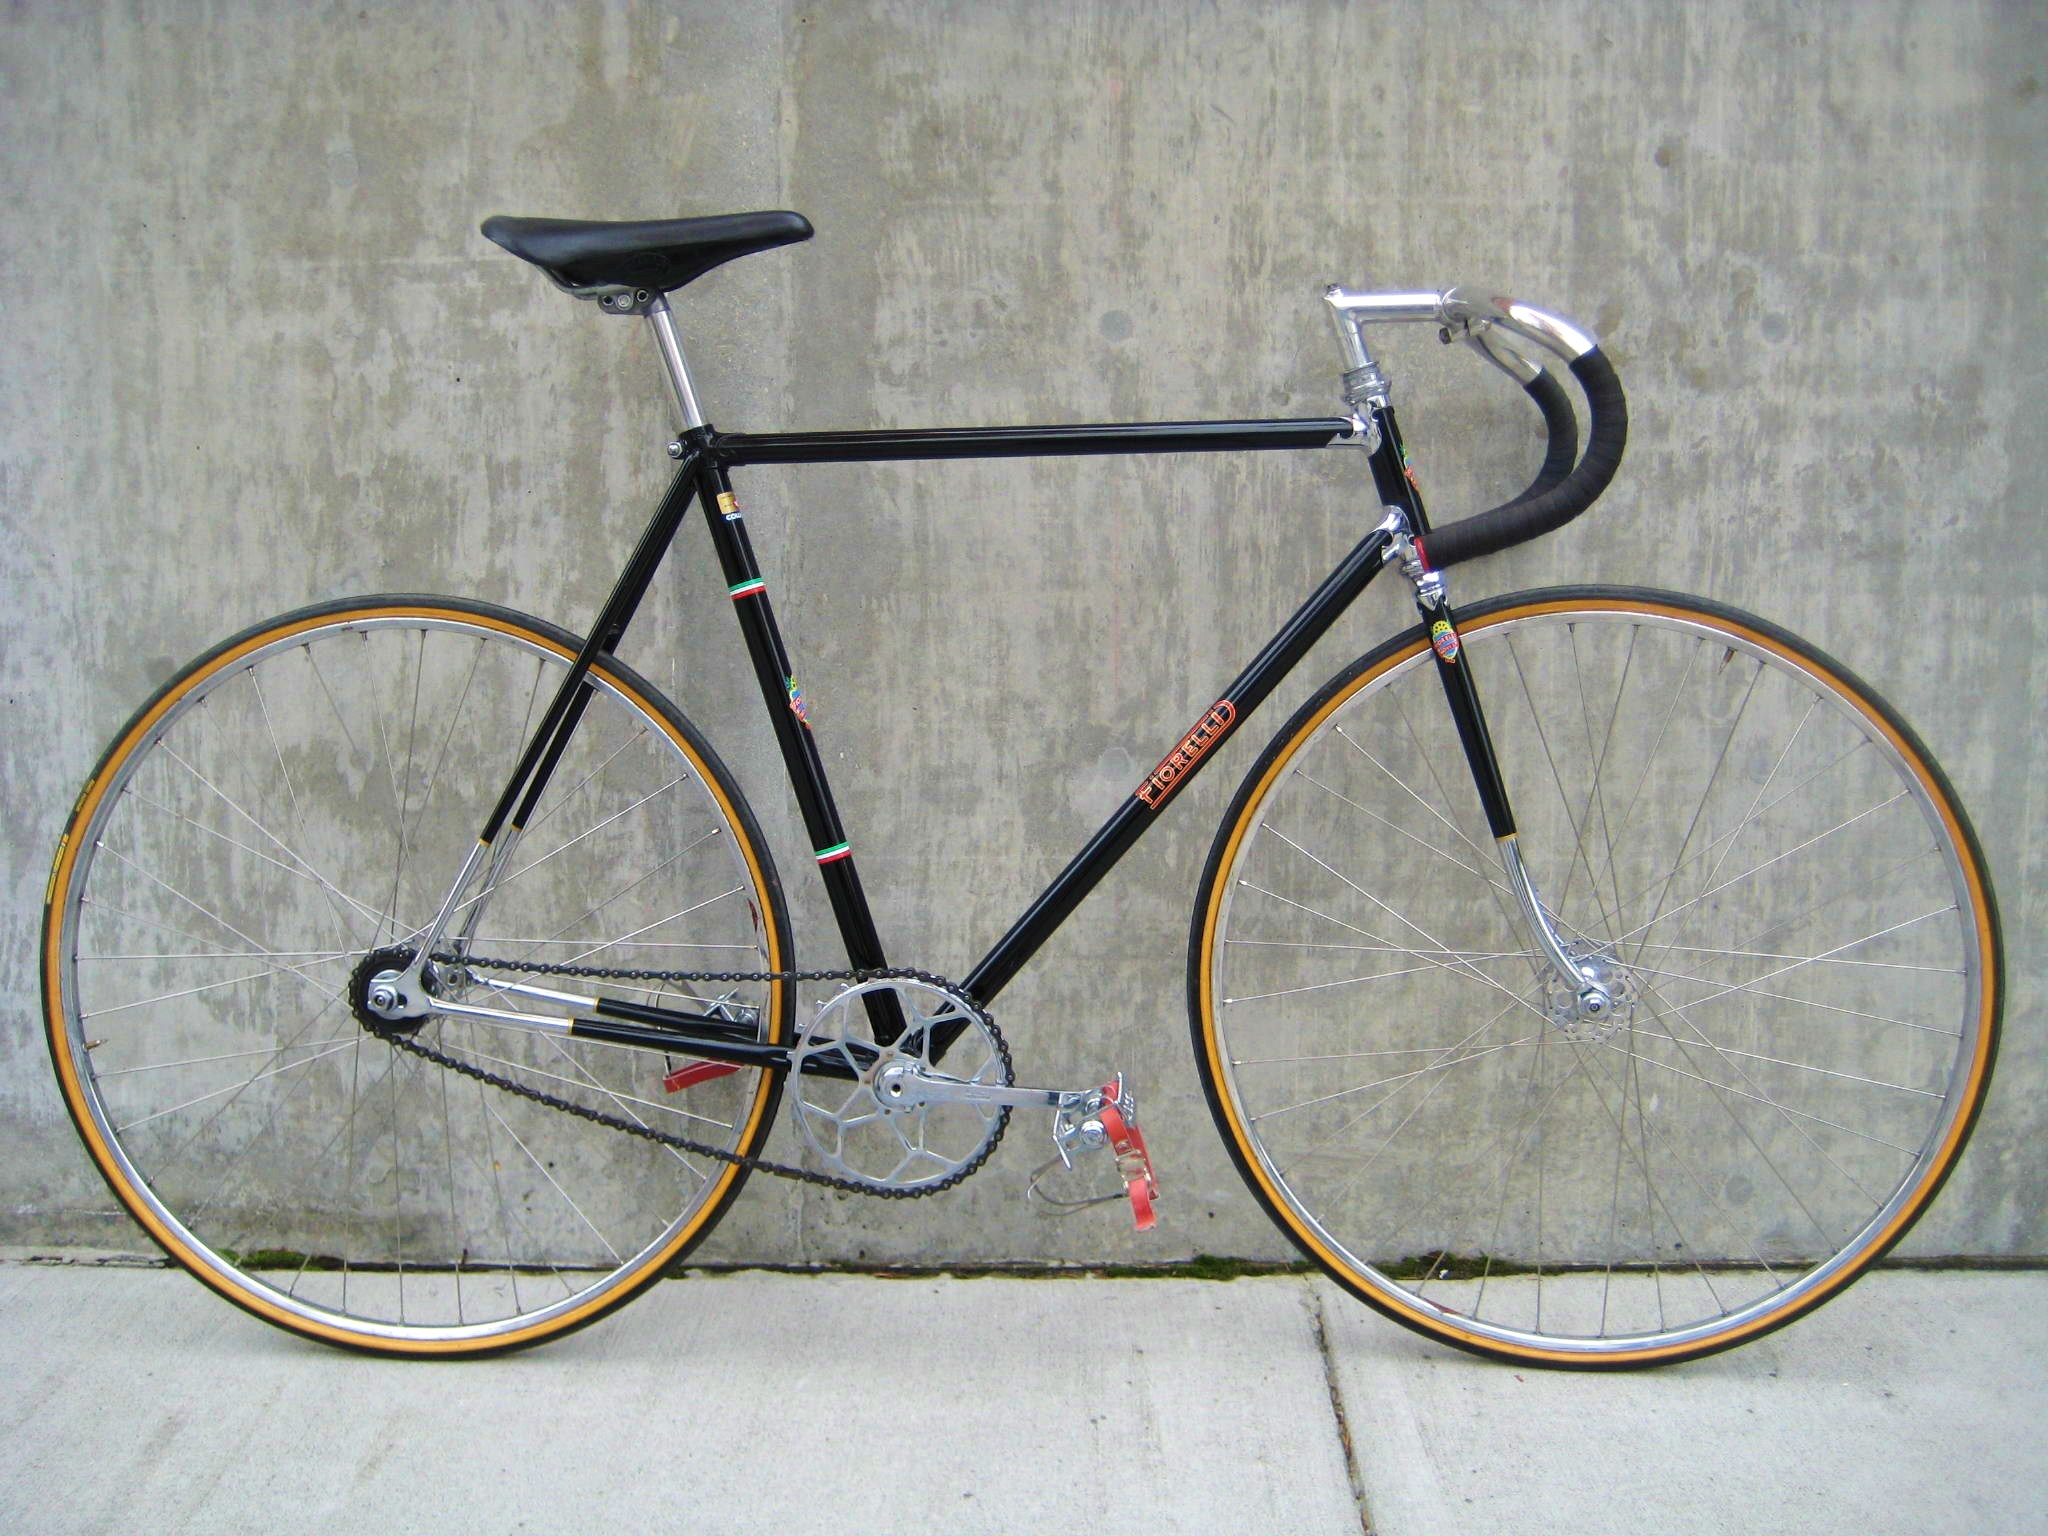 1952 Fiorelli Track Bike Classic Cycle Bainbridge Island Kitsap